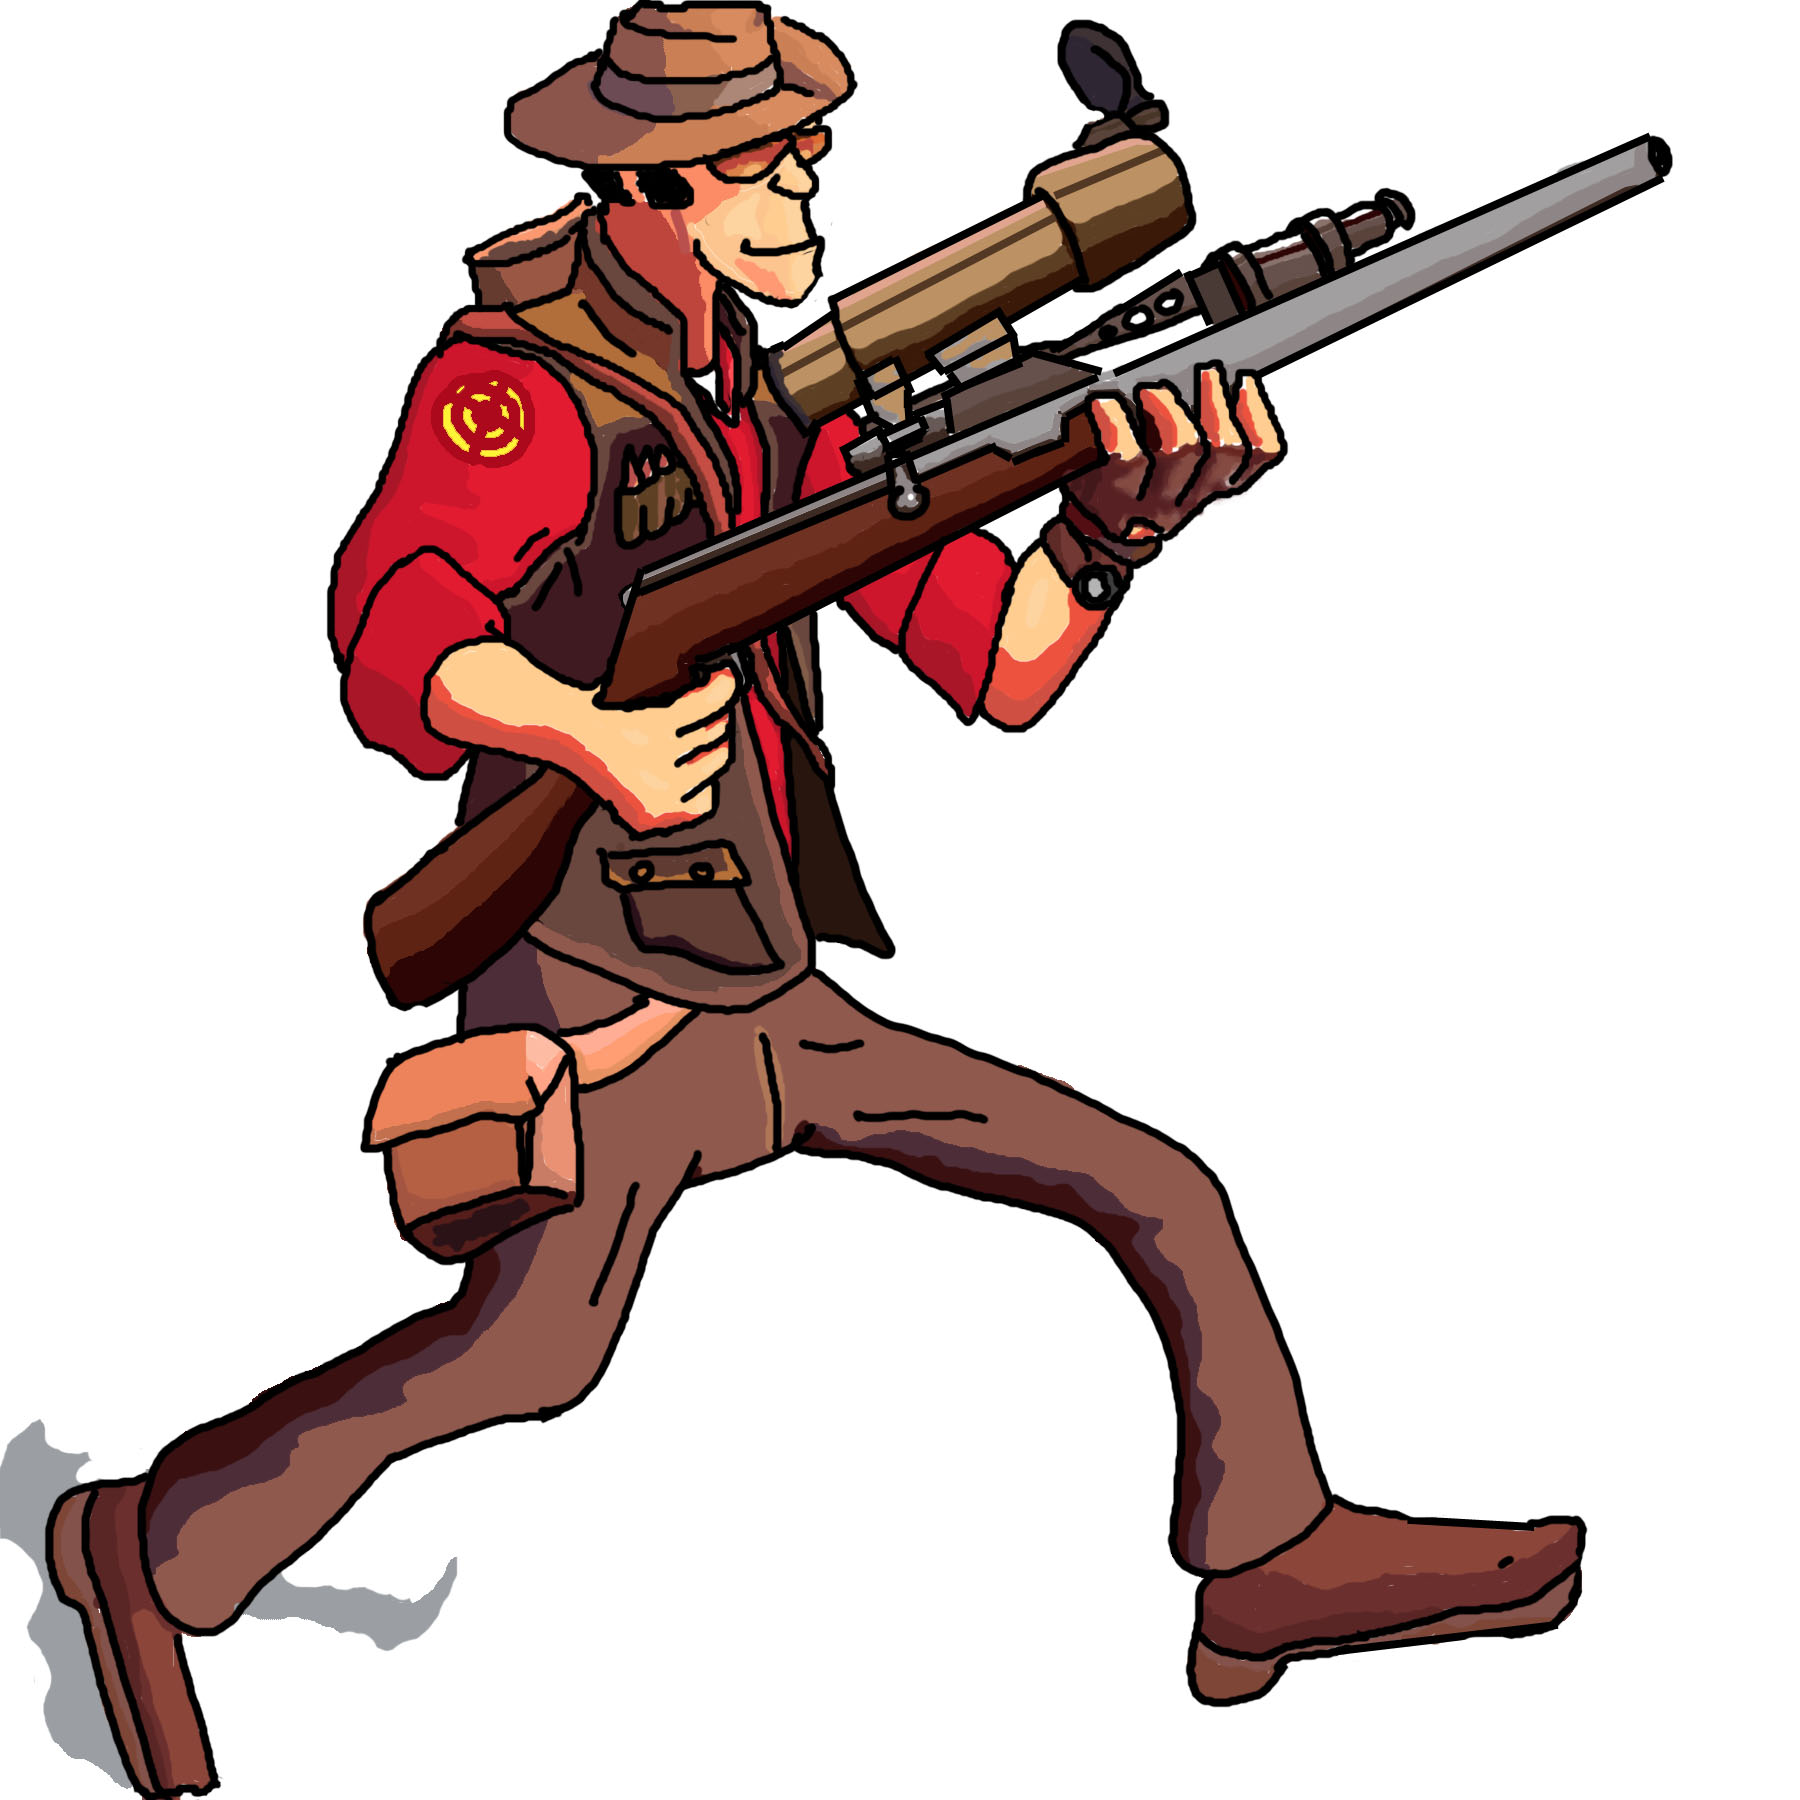 Team Fortress 2 clipart #3, Download drawings